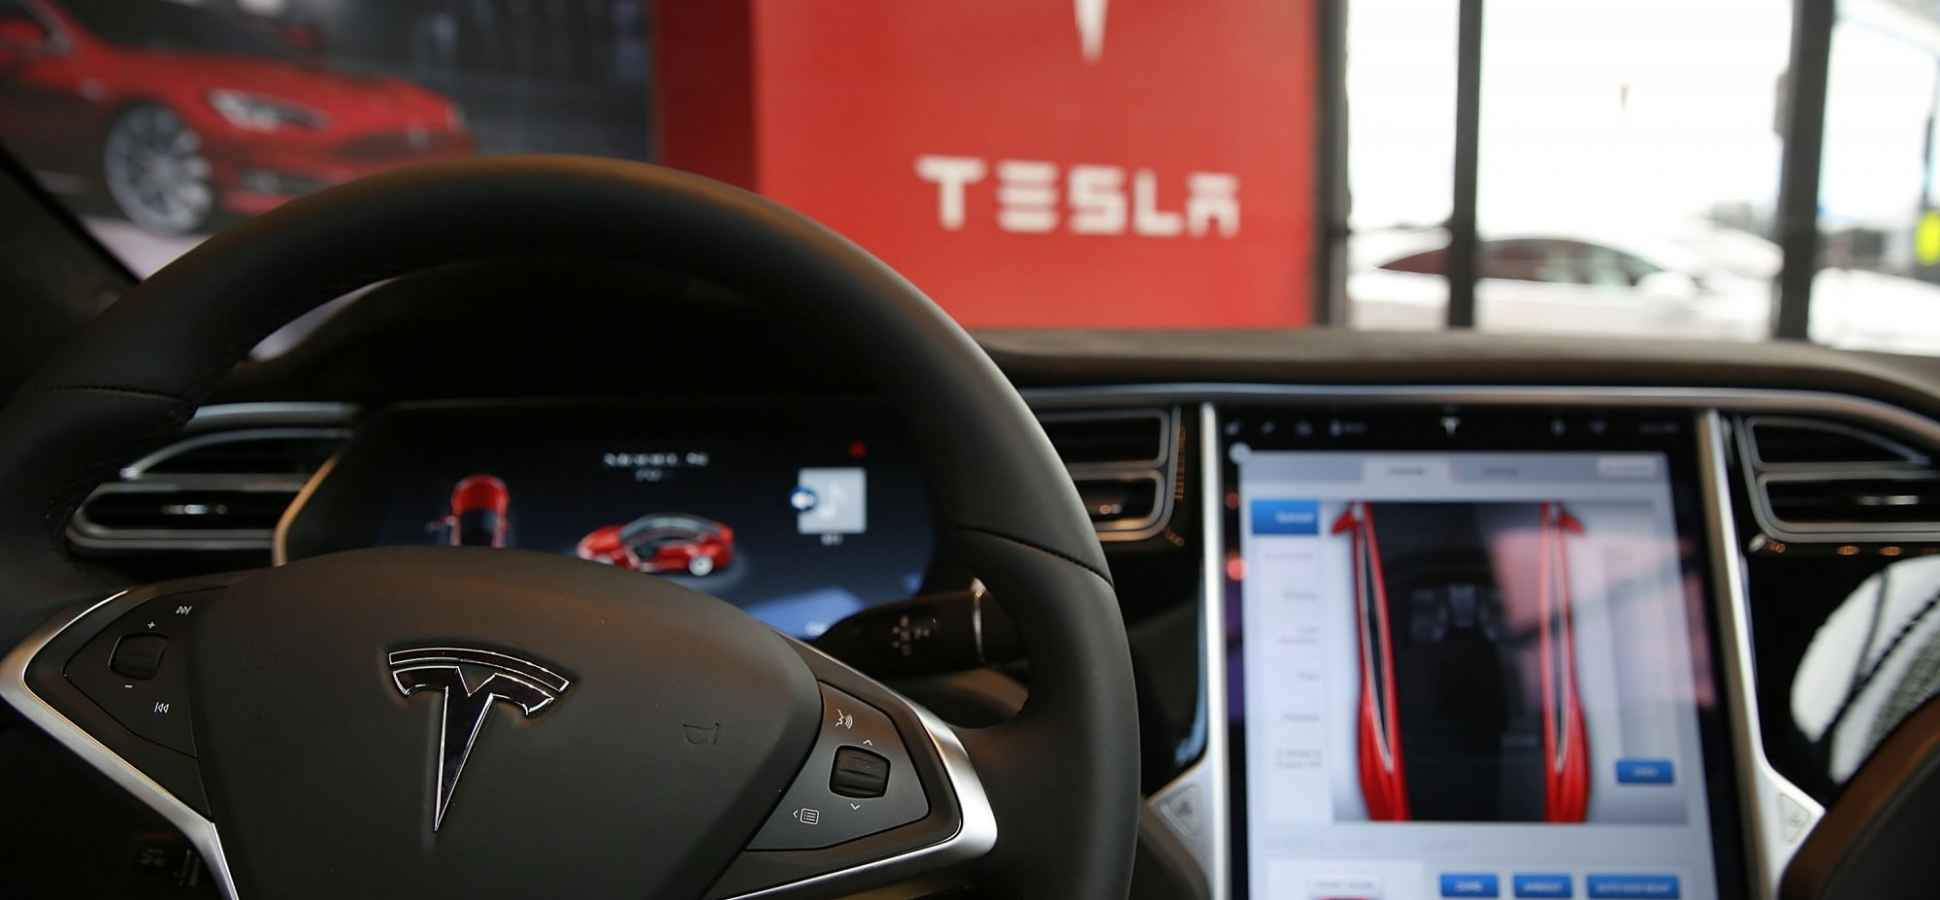 Chinese Hackers Take Control of a Tesla From 12 Miles Away (Most Cars Are Probably Vulnerable)